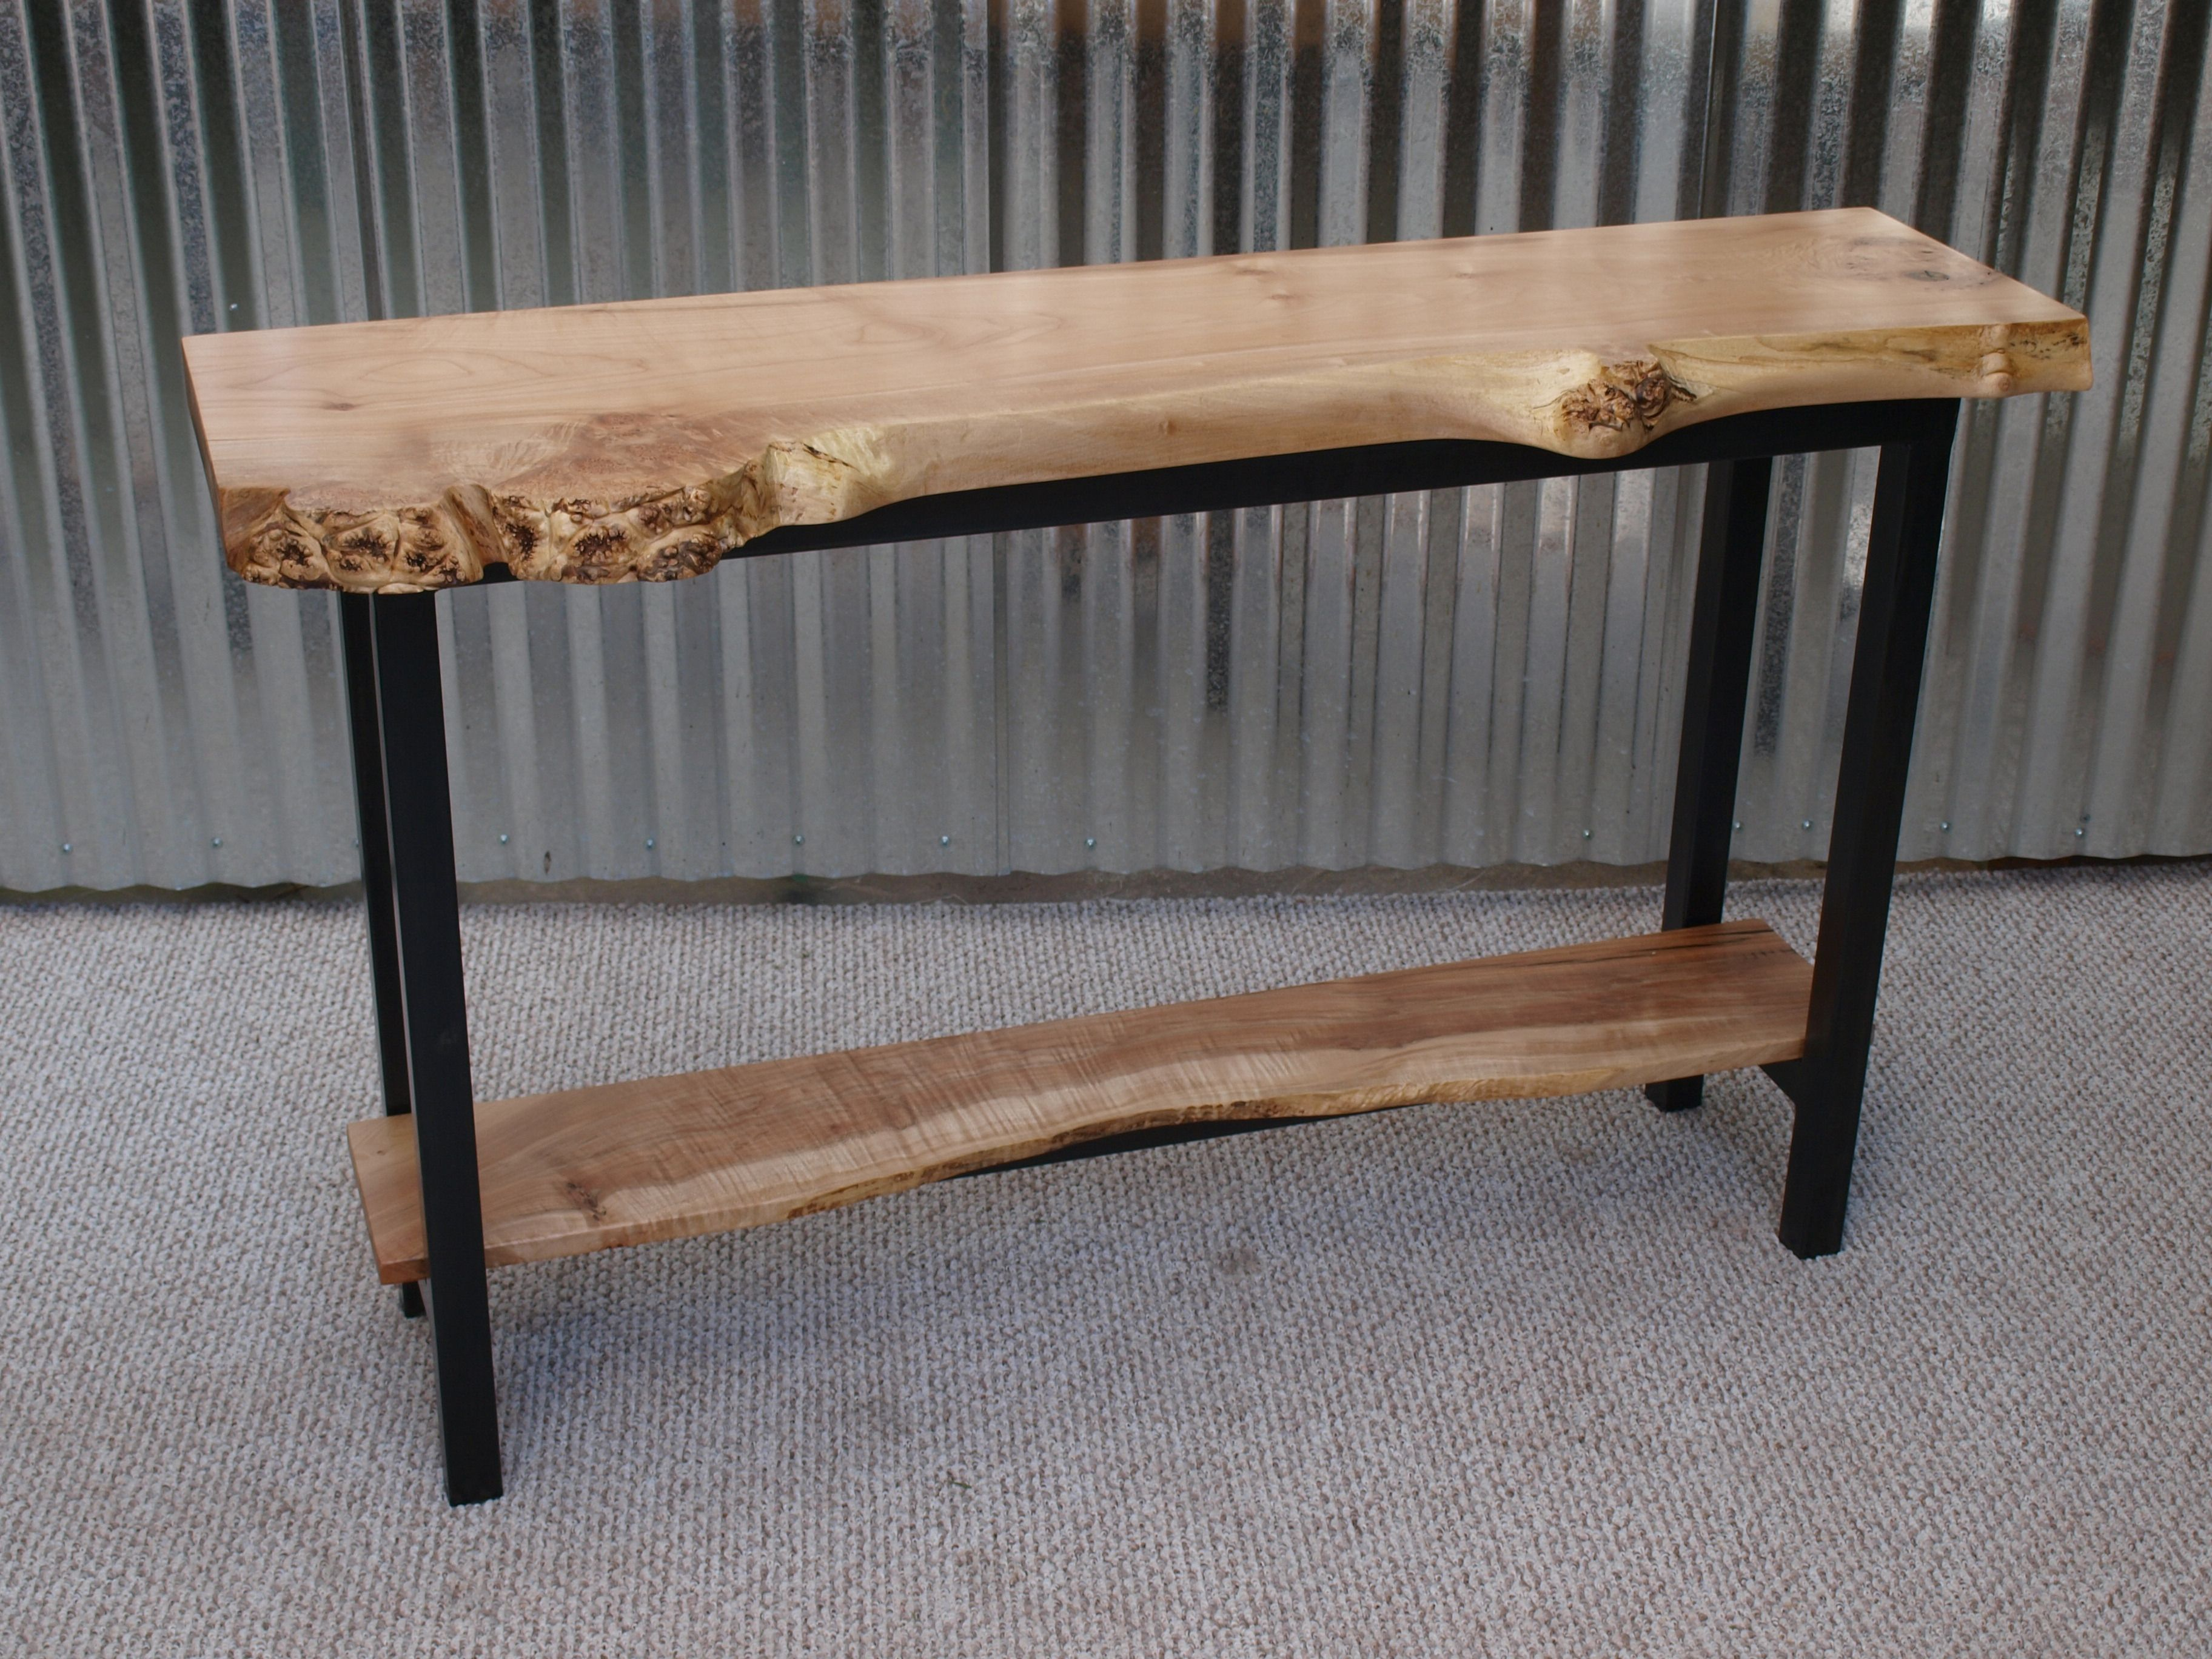 live edge maple sofa table with steel base  decor  pinterest  - live edge maple sofa table with steel base